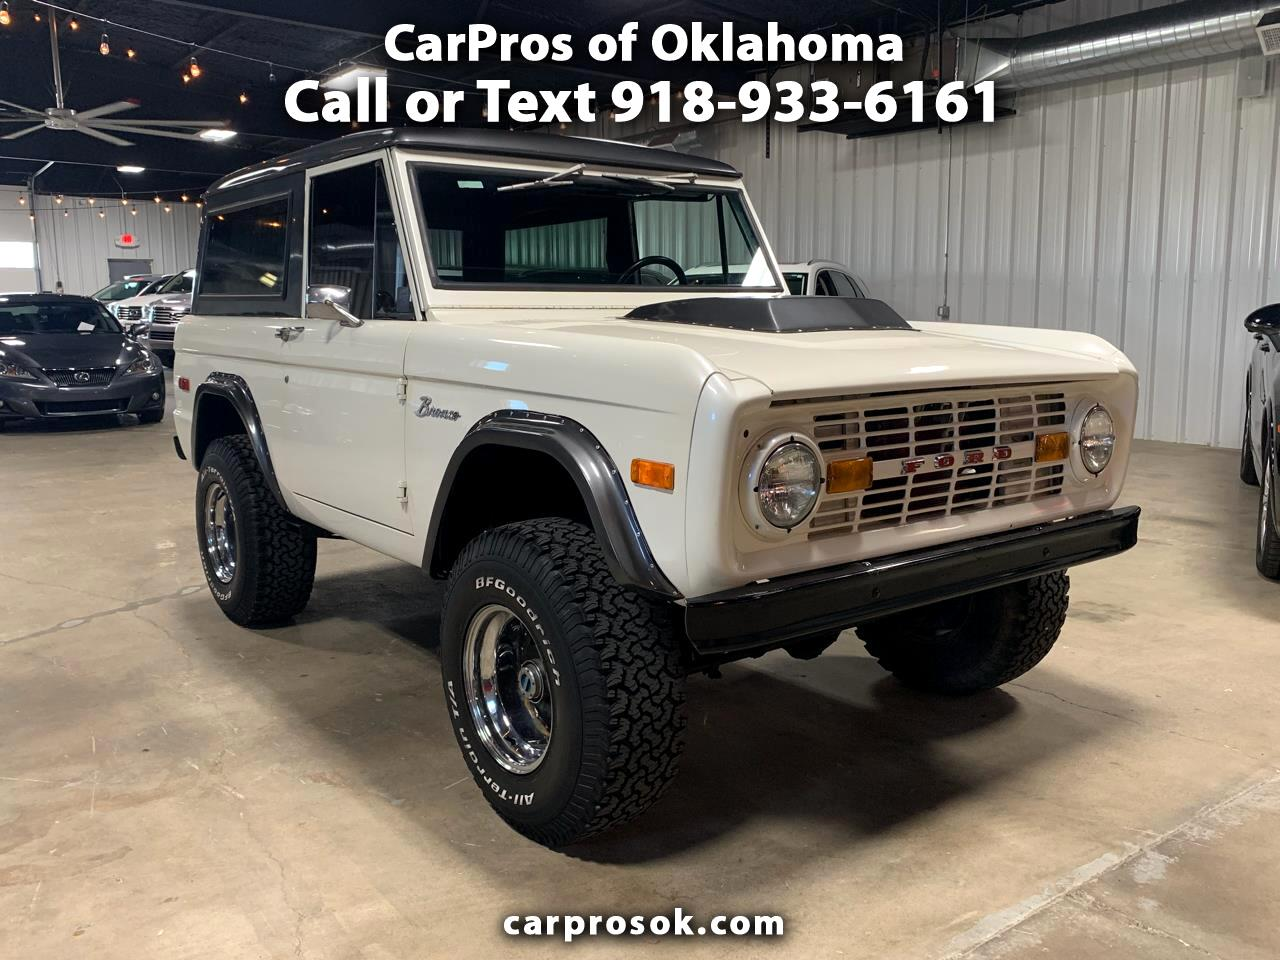 1973 Ford Bronco 4WD